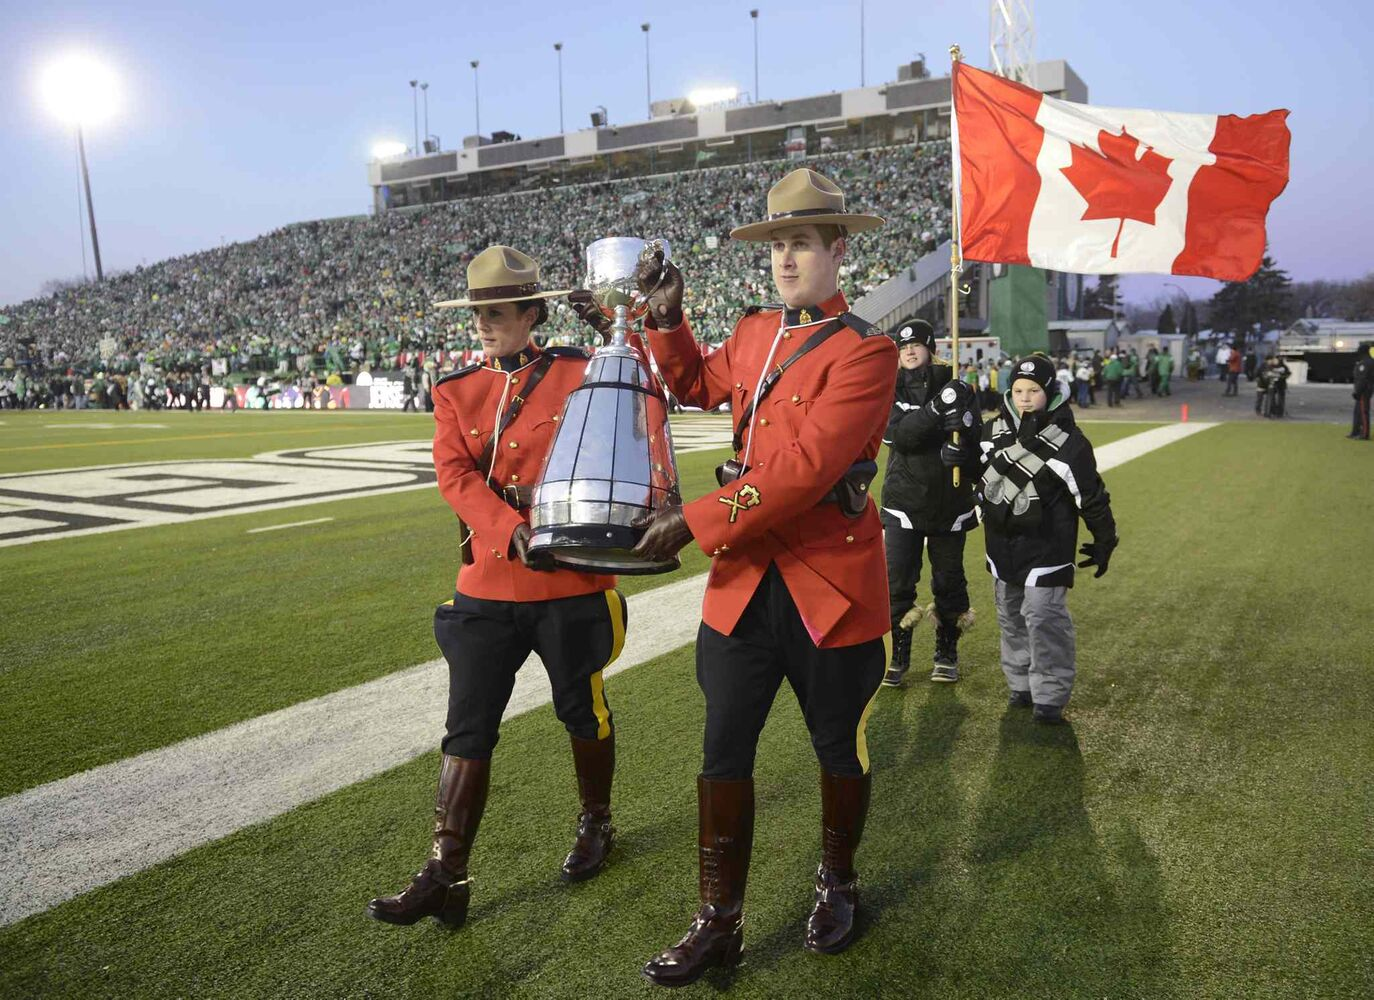 The Grey Cup is carried onto the field during pre-game ceremonies.